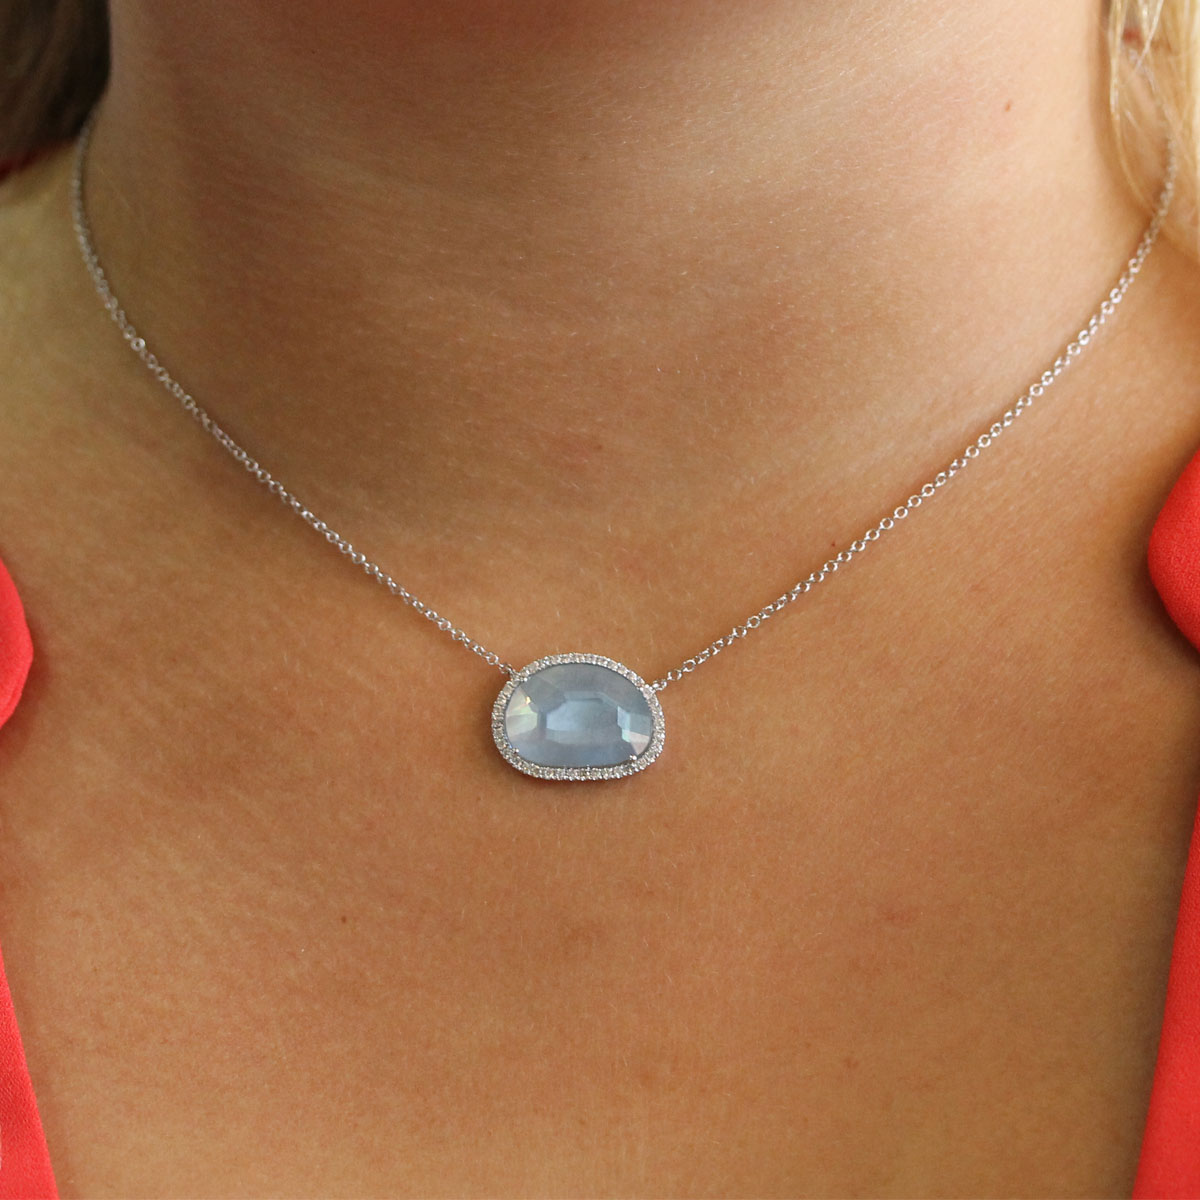 Delicate Blue Topaz necklace